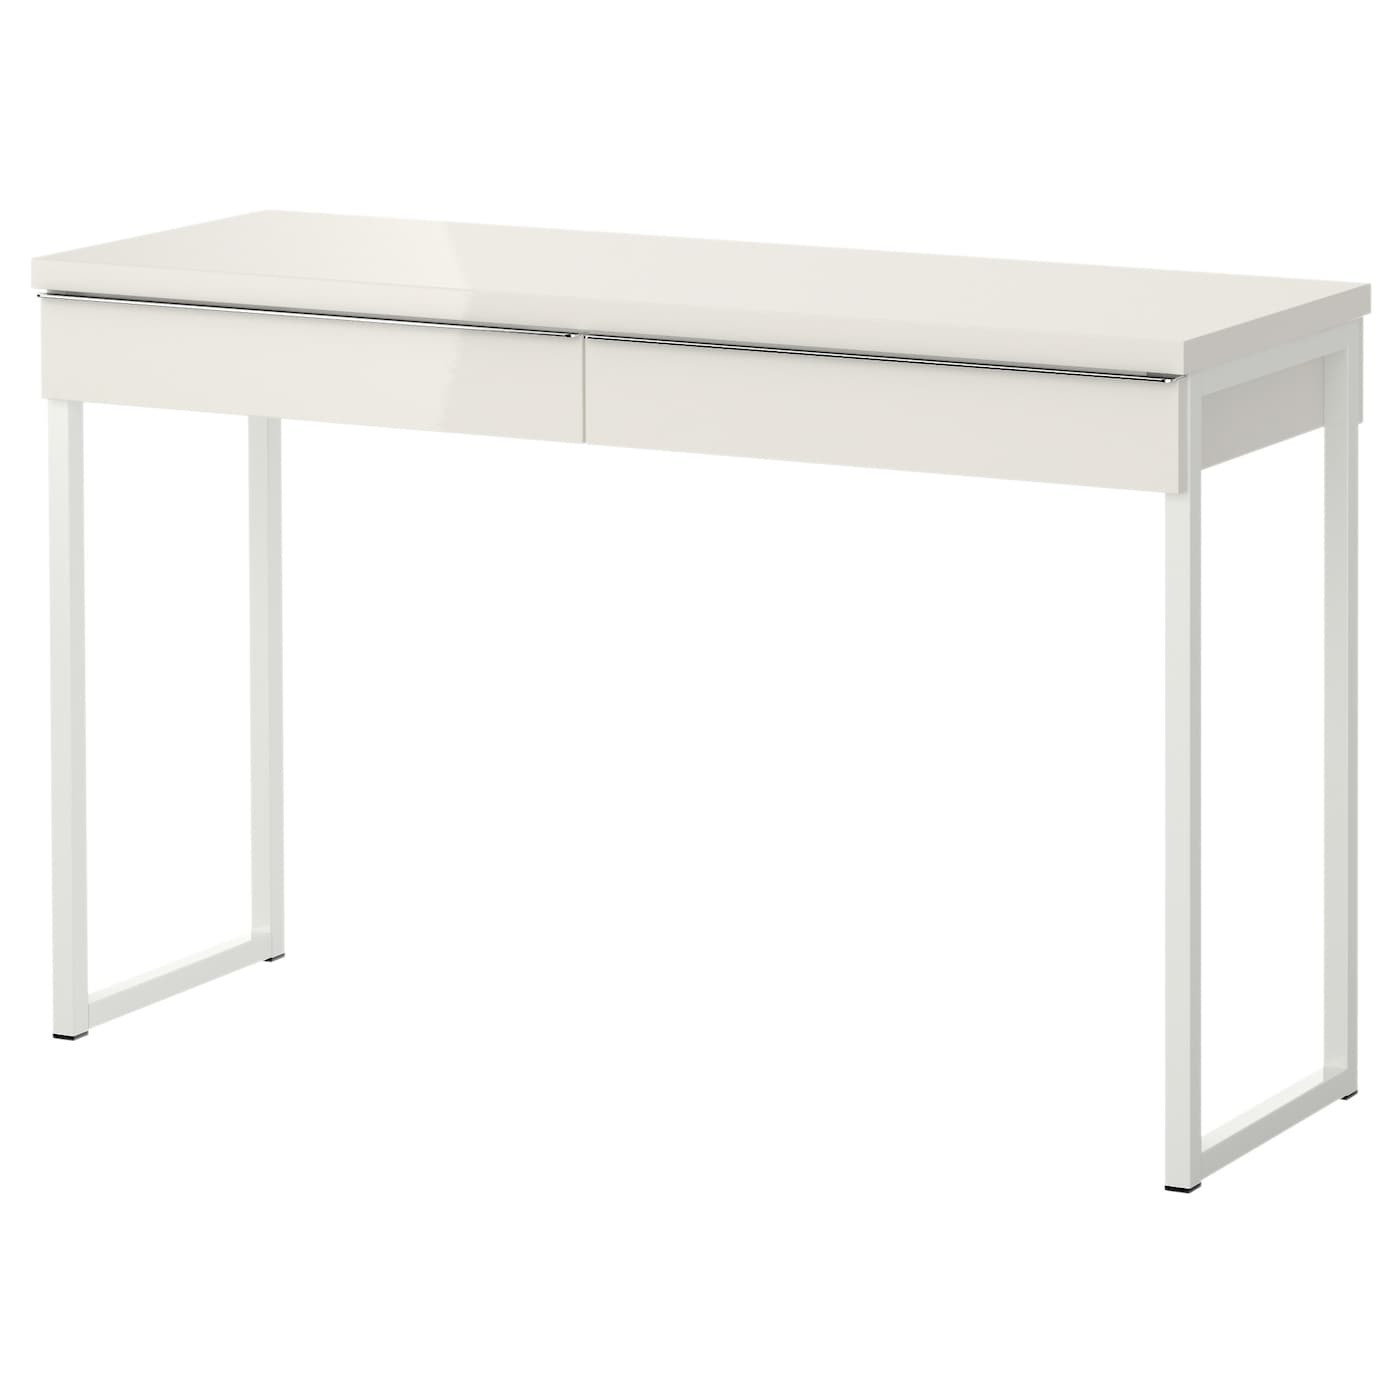 Best burs bureau brillant blanc 120 x 40 cm ikea for Outil de planification de placard ikea